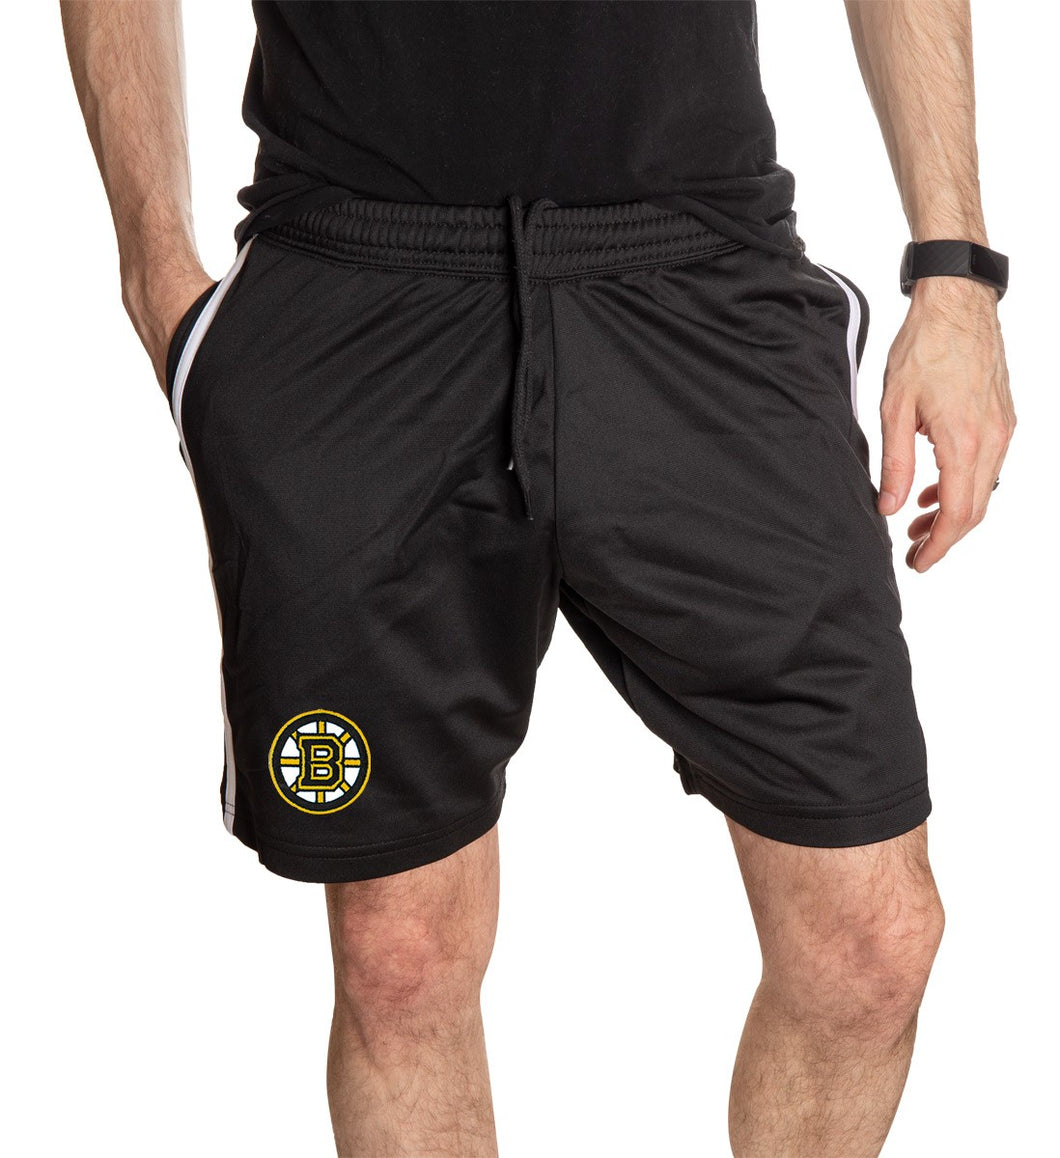 NHL Mens Official Team Two-Stripe Shorts- Boston Bruins  Full Length Photo WIth Mans Hand In Pocket